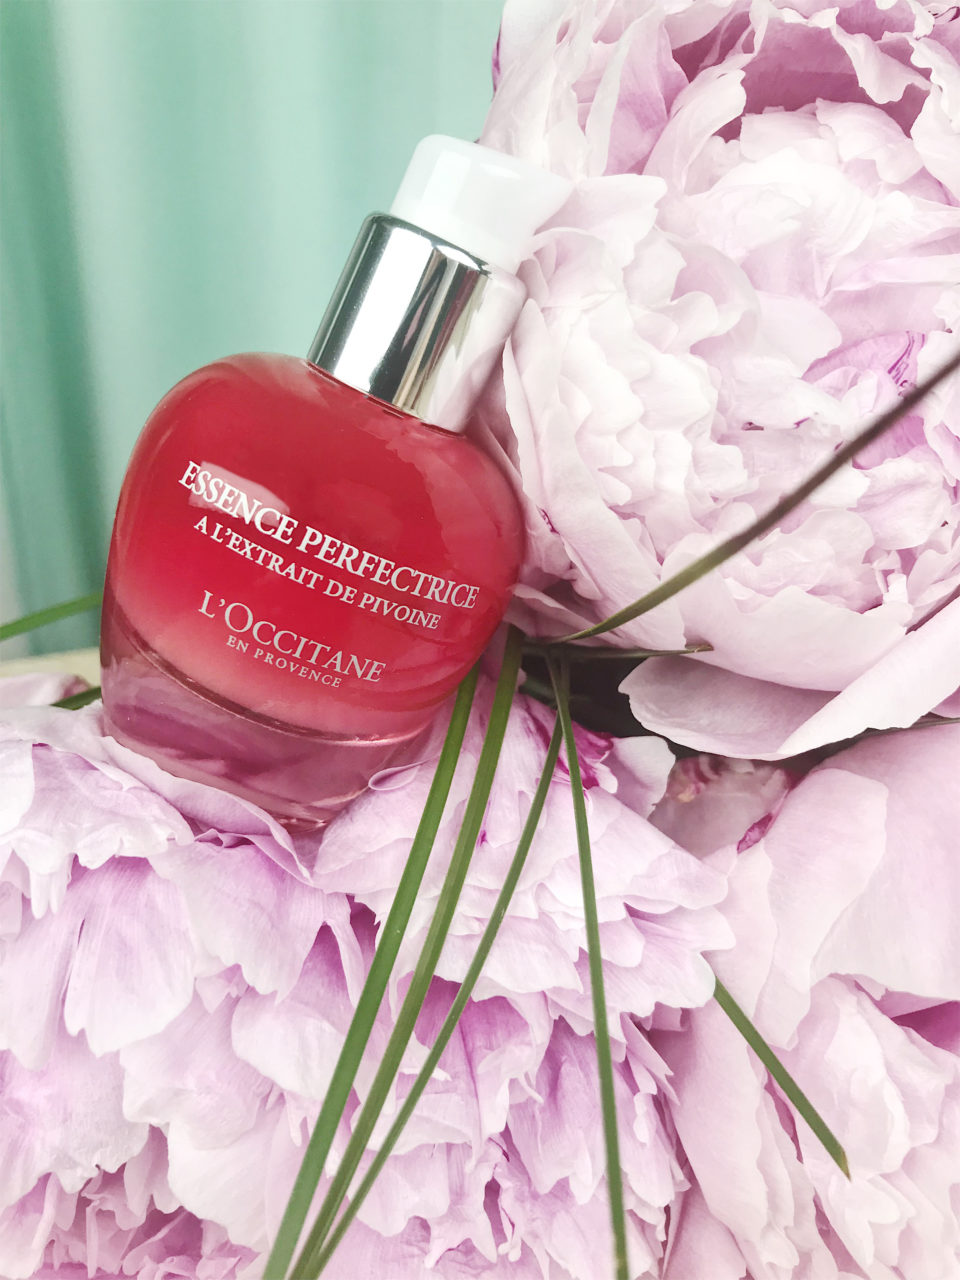 Essence Perfectrice - Pivoine Sublime de L'Occitane.